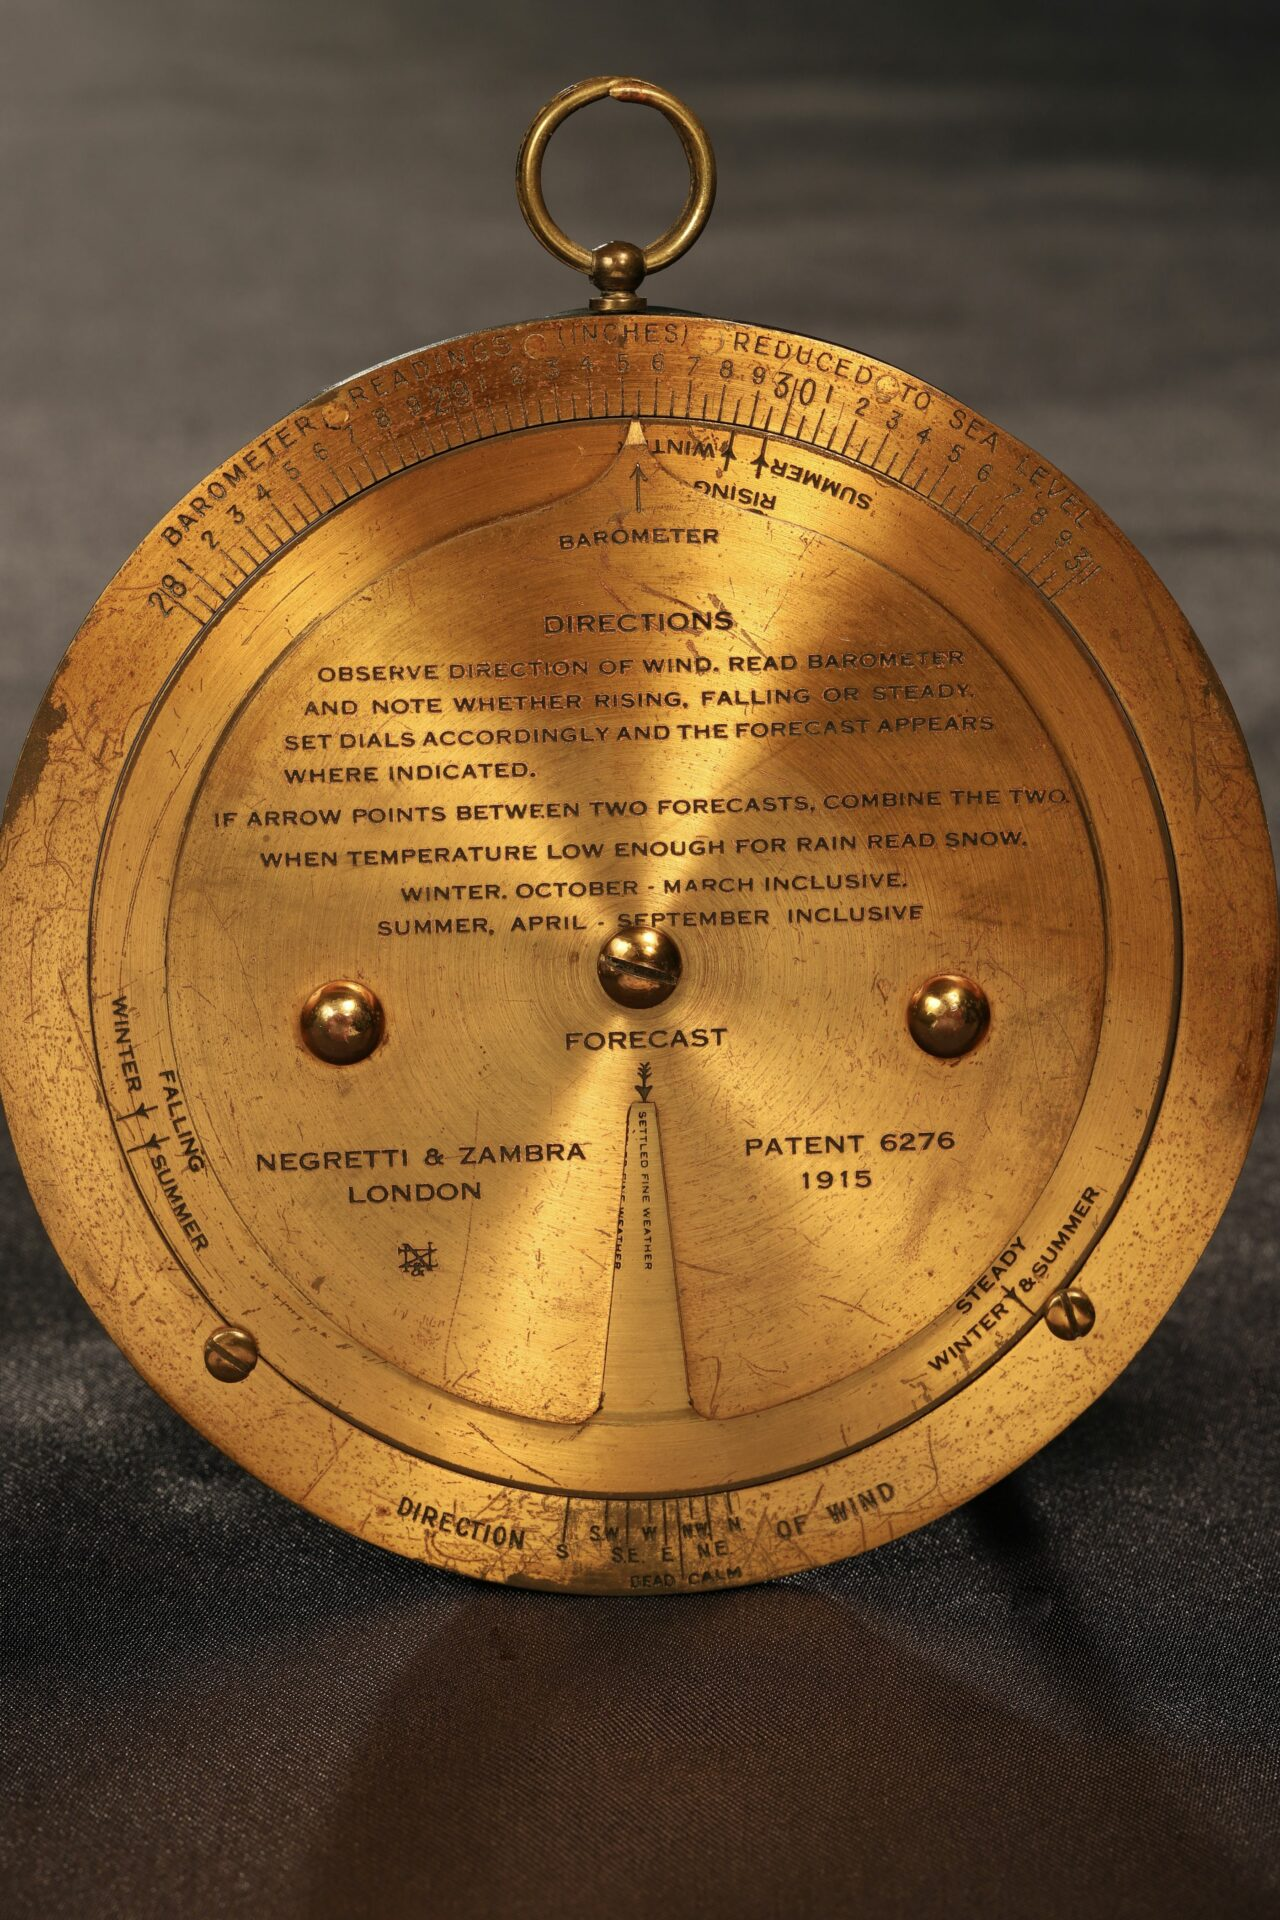 Image of front of brass forecaster from Negretti & Zambra Forecasting Aneroid No 9071 c1920